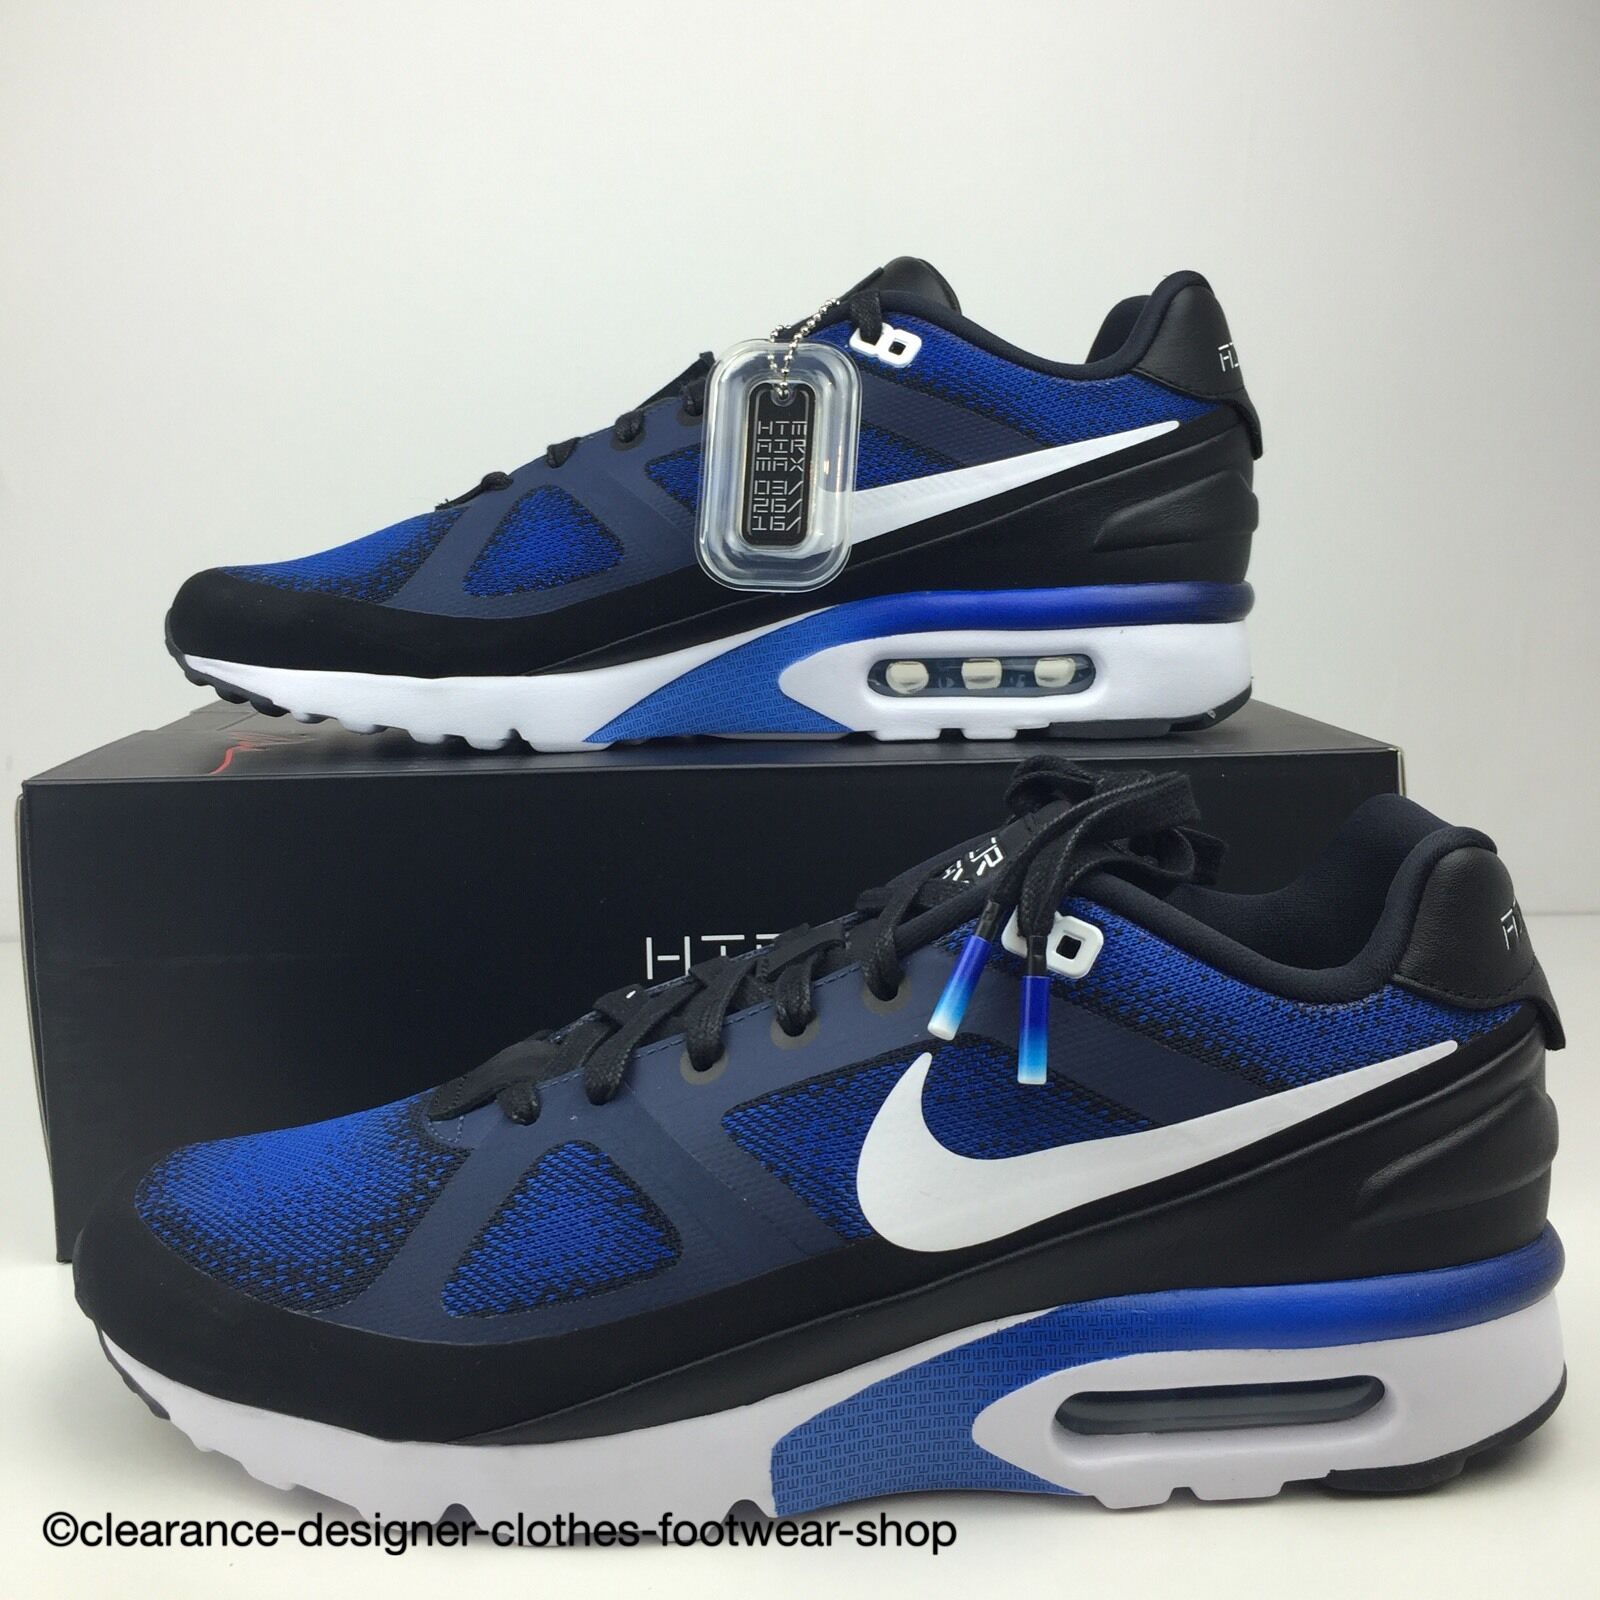 HTM NIKE AIR MAX MP ULTRA M TRAINERS MENS HTM AIR MAX DAY MARK SHOES